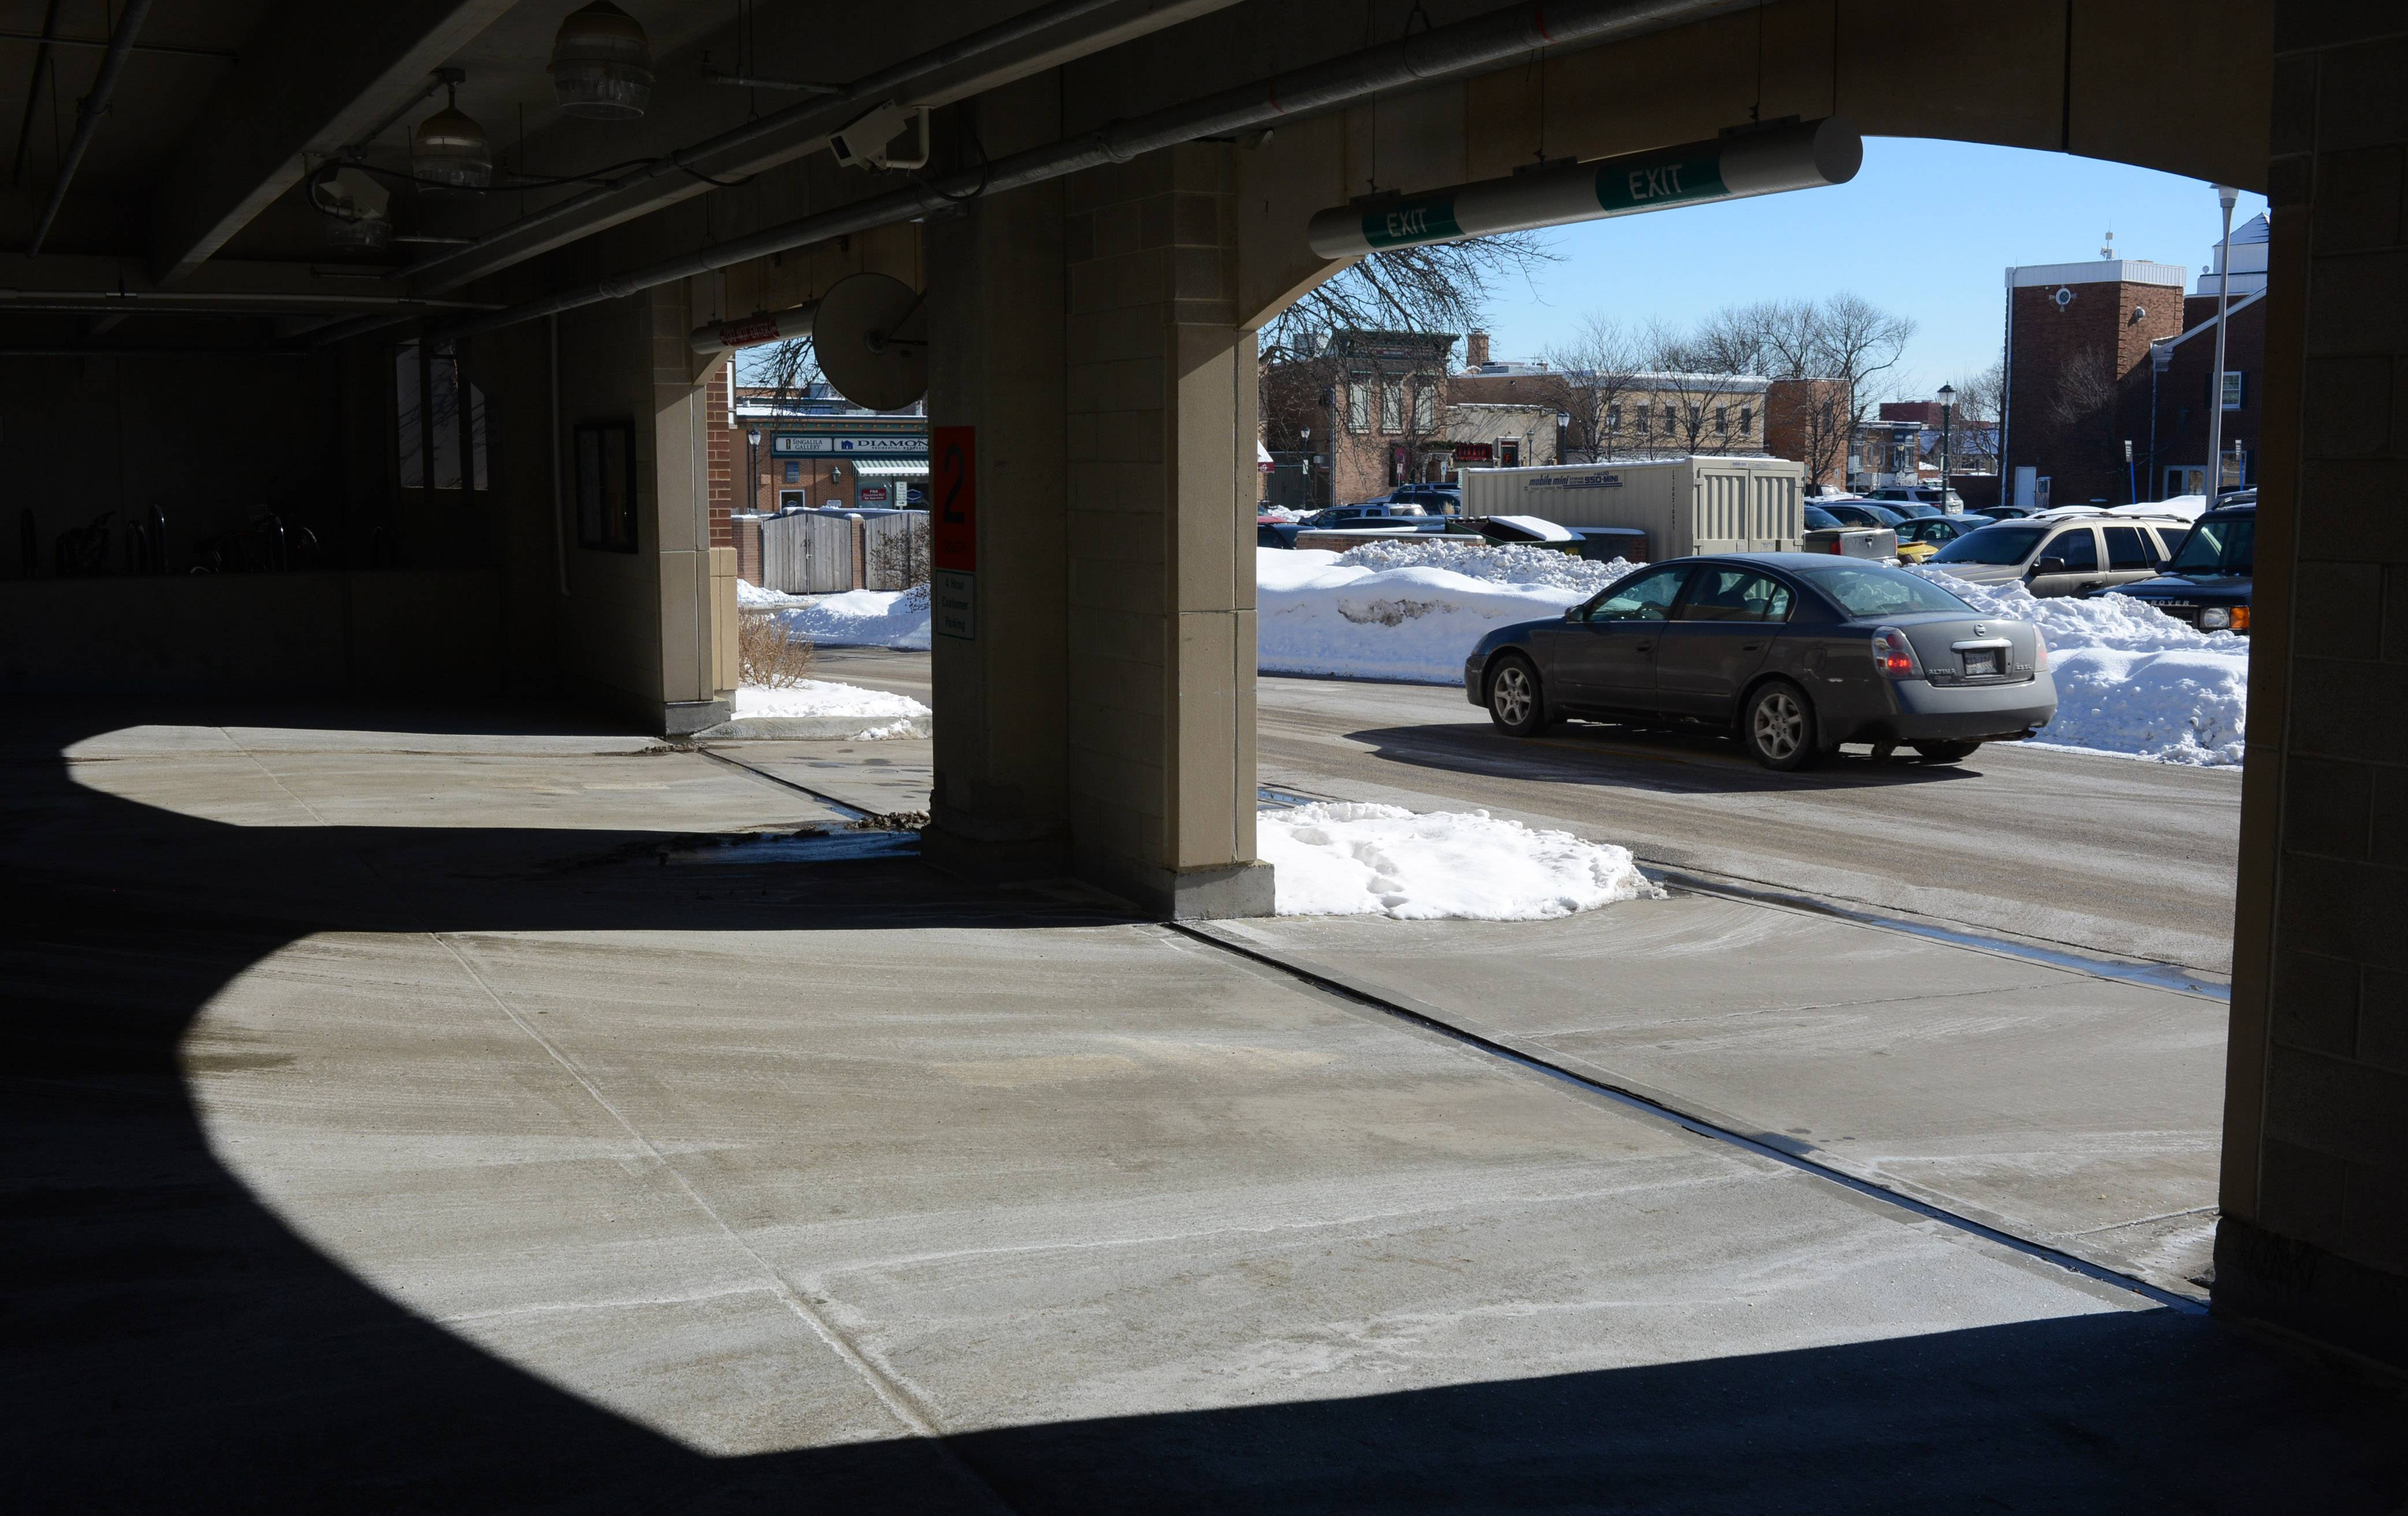 Adding another level to the parking garage on the west side of Milwaukee Avenue is being considered to provide more spaces in downtown Libertyville.